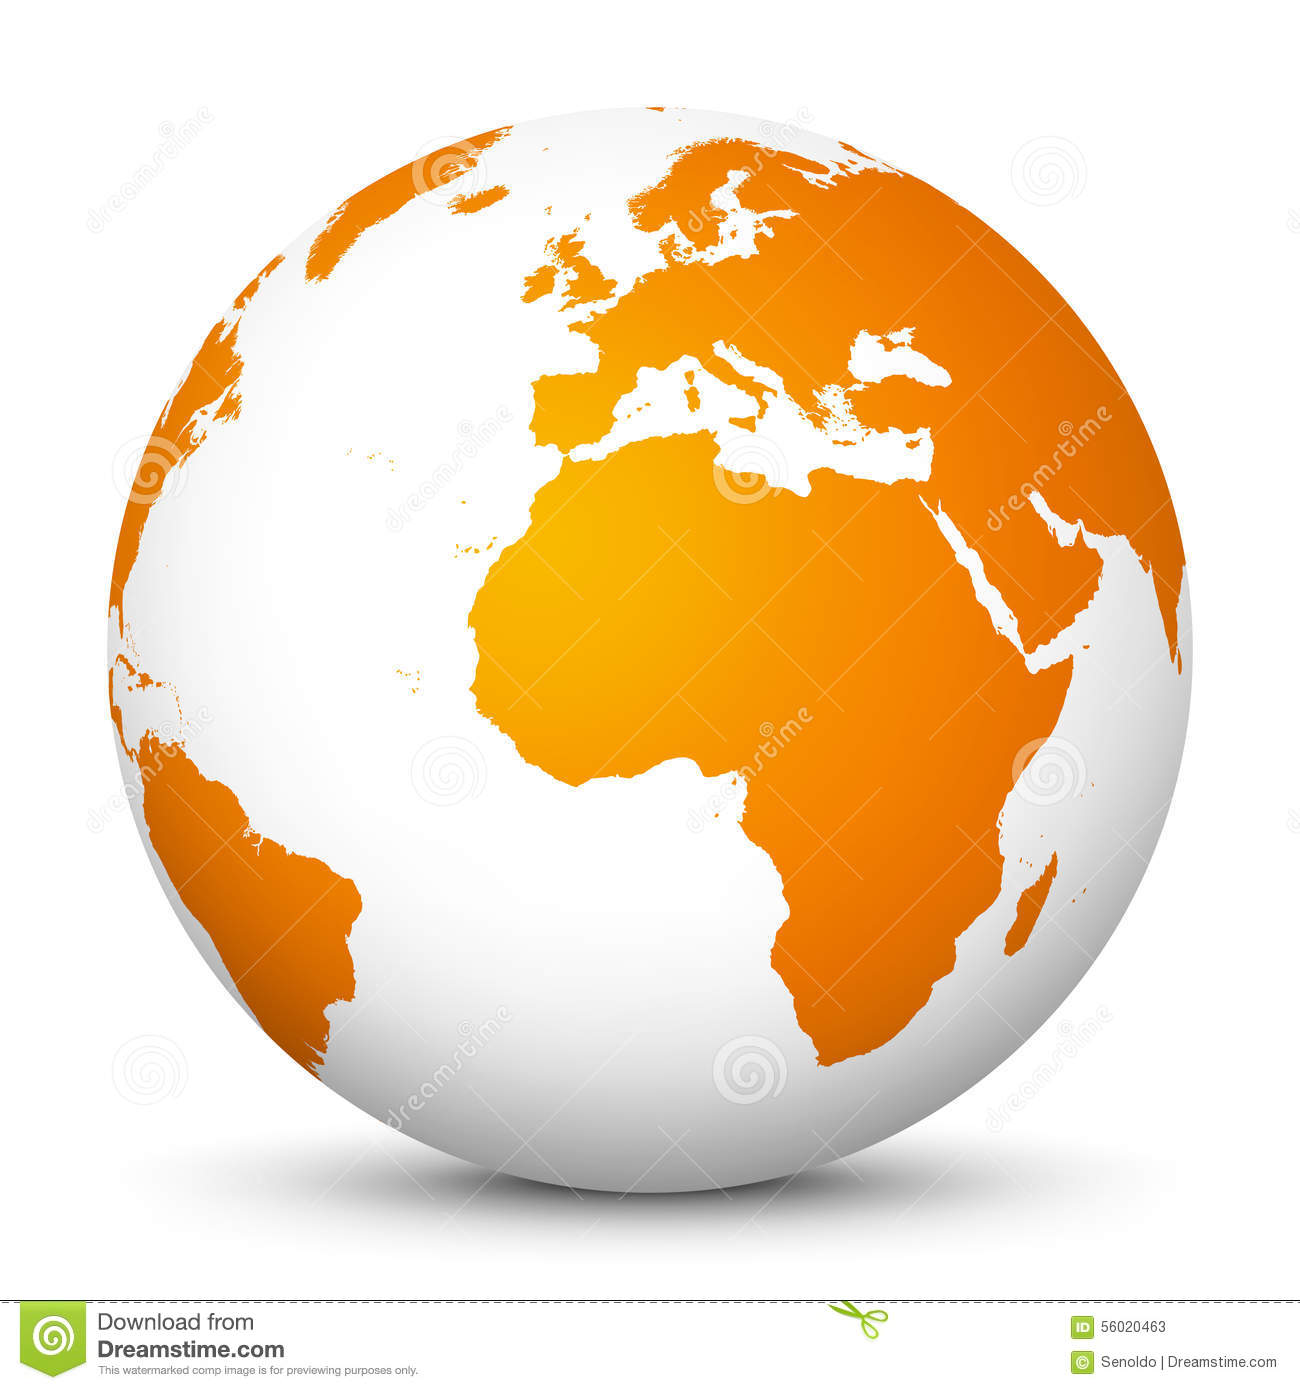 White Vector Globe Icon With Orange Continents - Planet ...